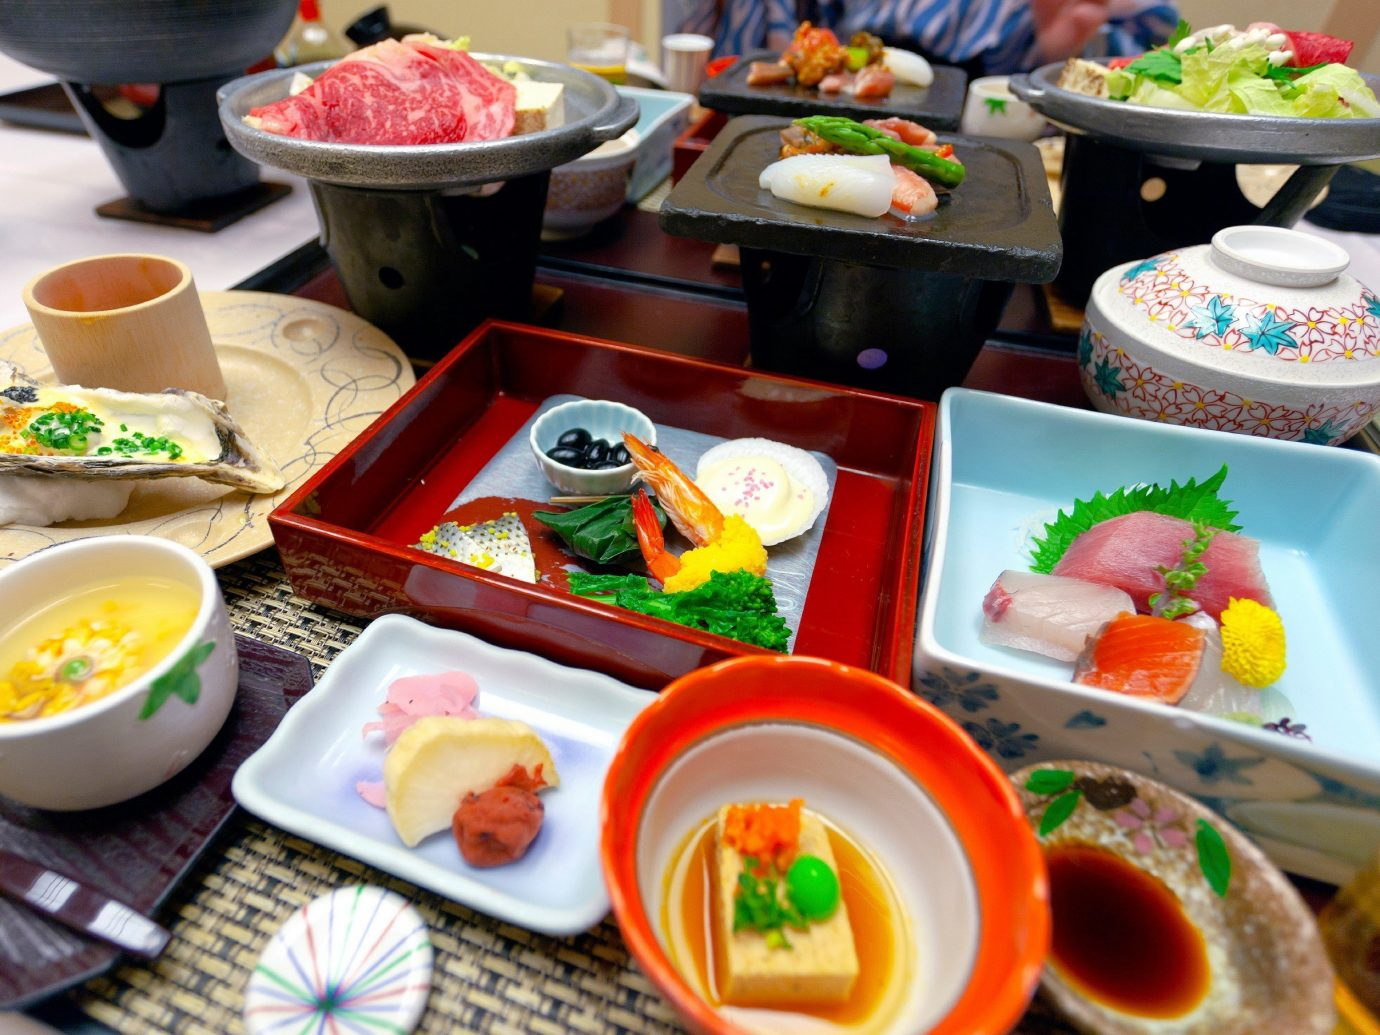 Food + Drink food dish meal lunch plate cuisine bowl asian food breakfast chinese food brunch supper different several